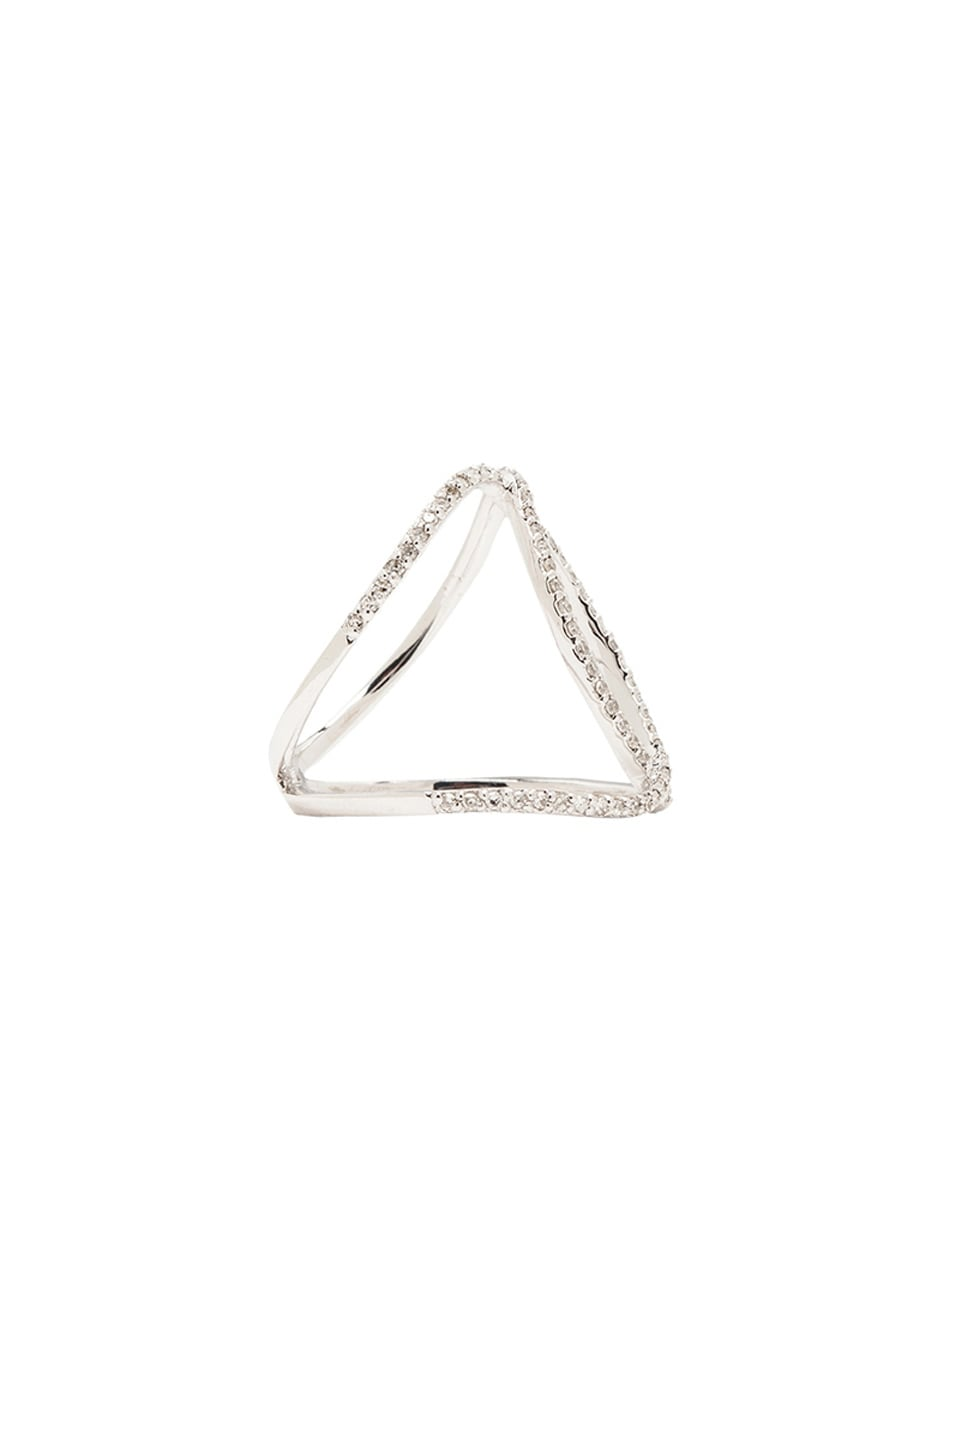 Image 2 of Jacquie Aiche 14K Pave Overlap Circle Ring in White Gold